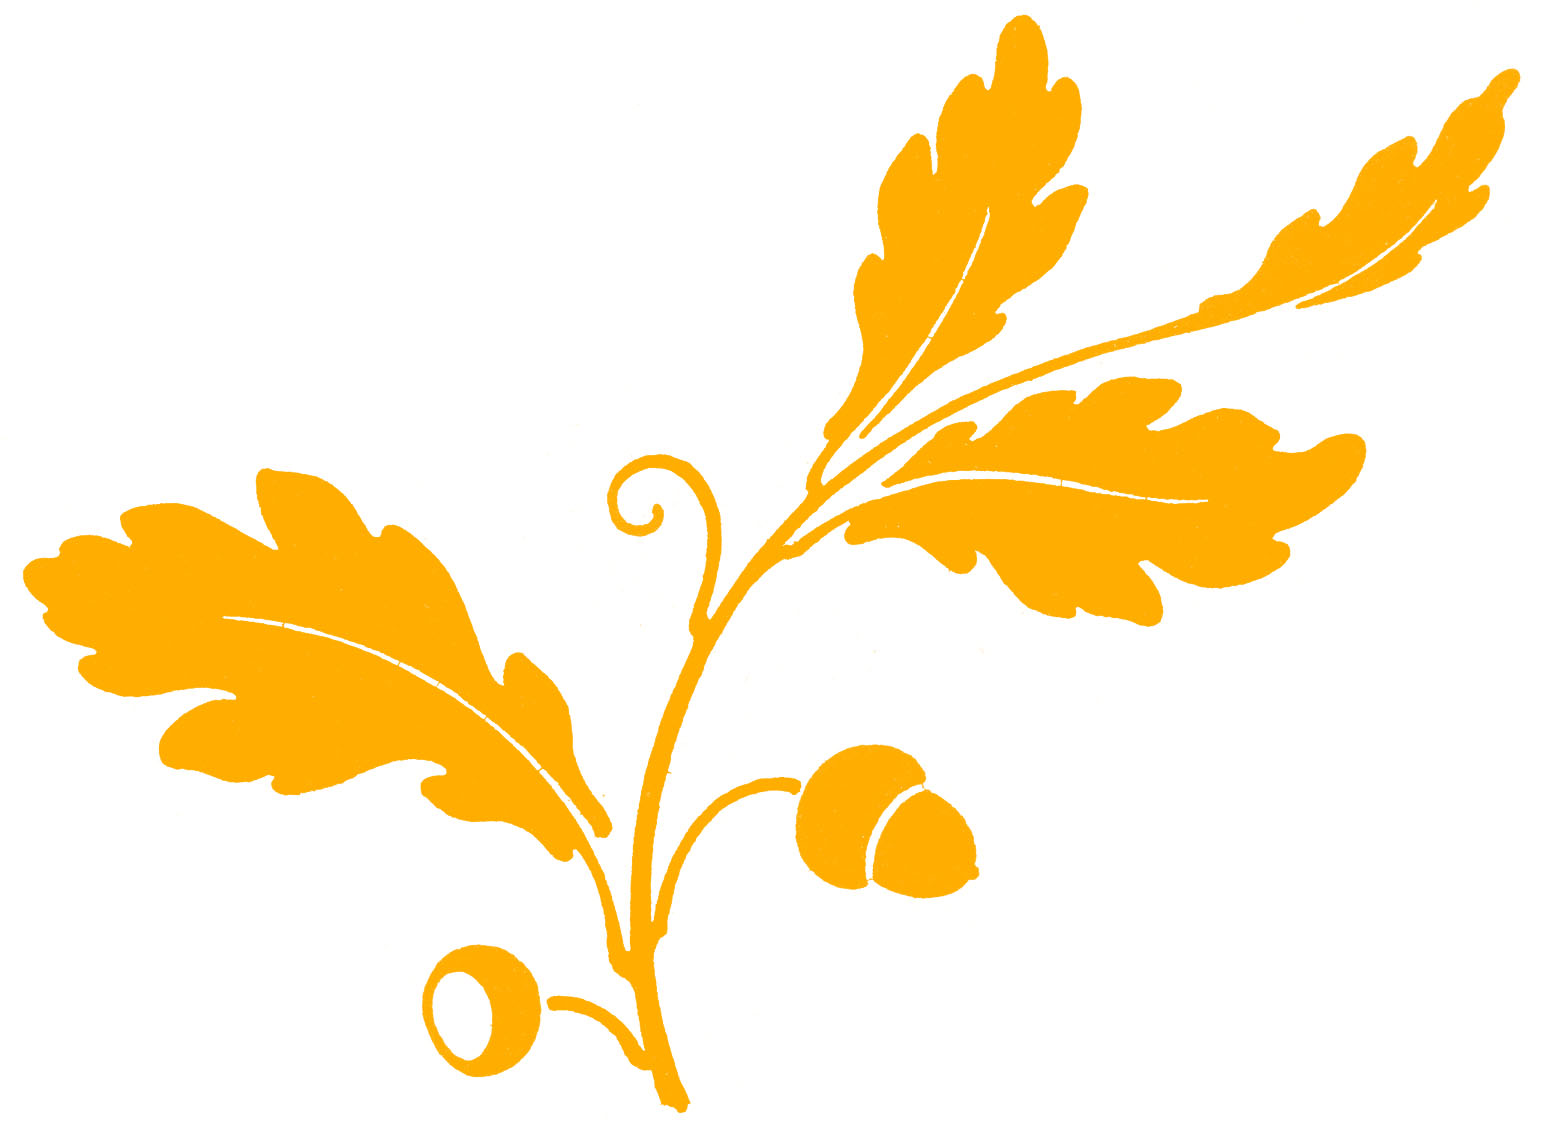 Leaves clipart yellow leaf #7